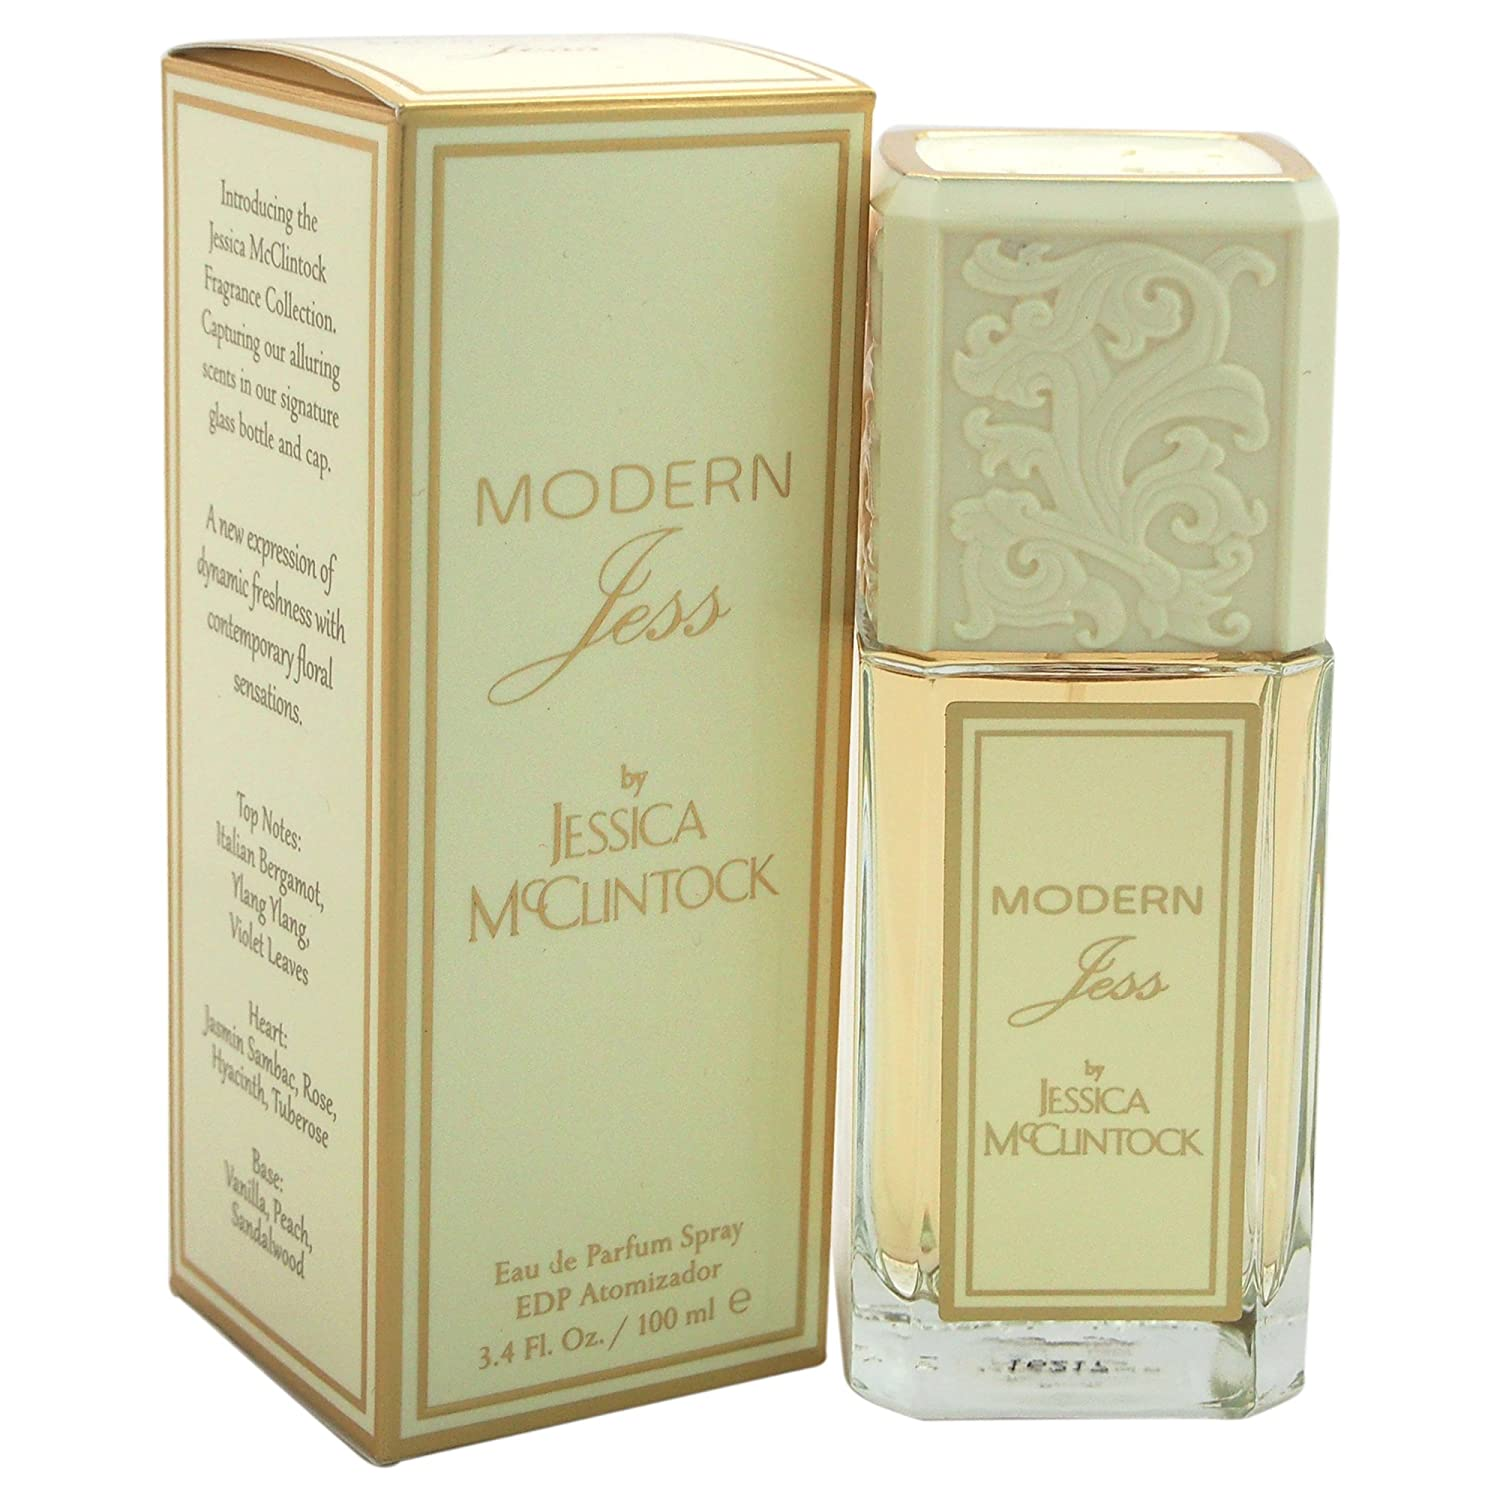 Jessica McClintock Modern Jess Eau de Toilette Spray for Women, 3.4 Oz 861940000068